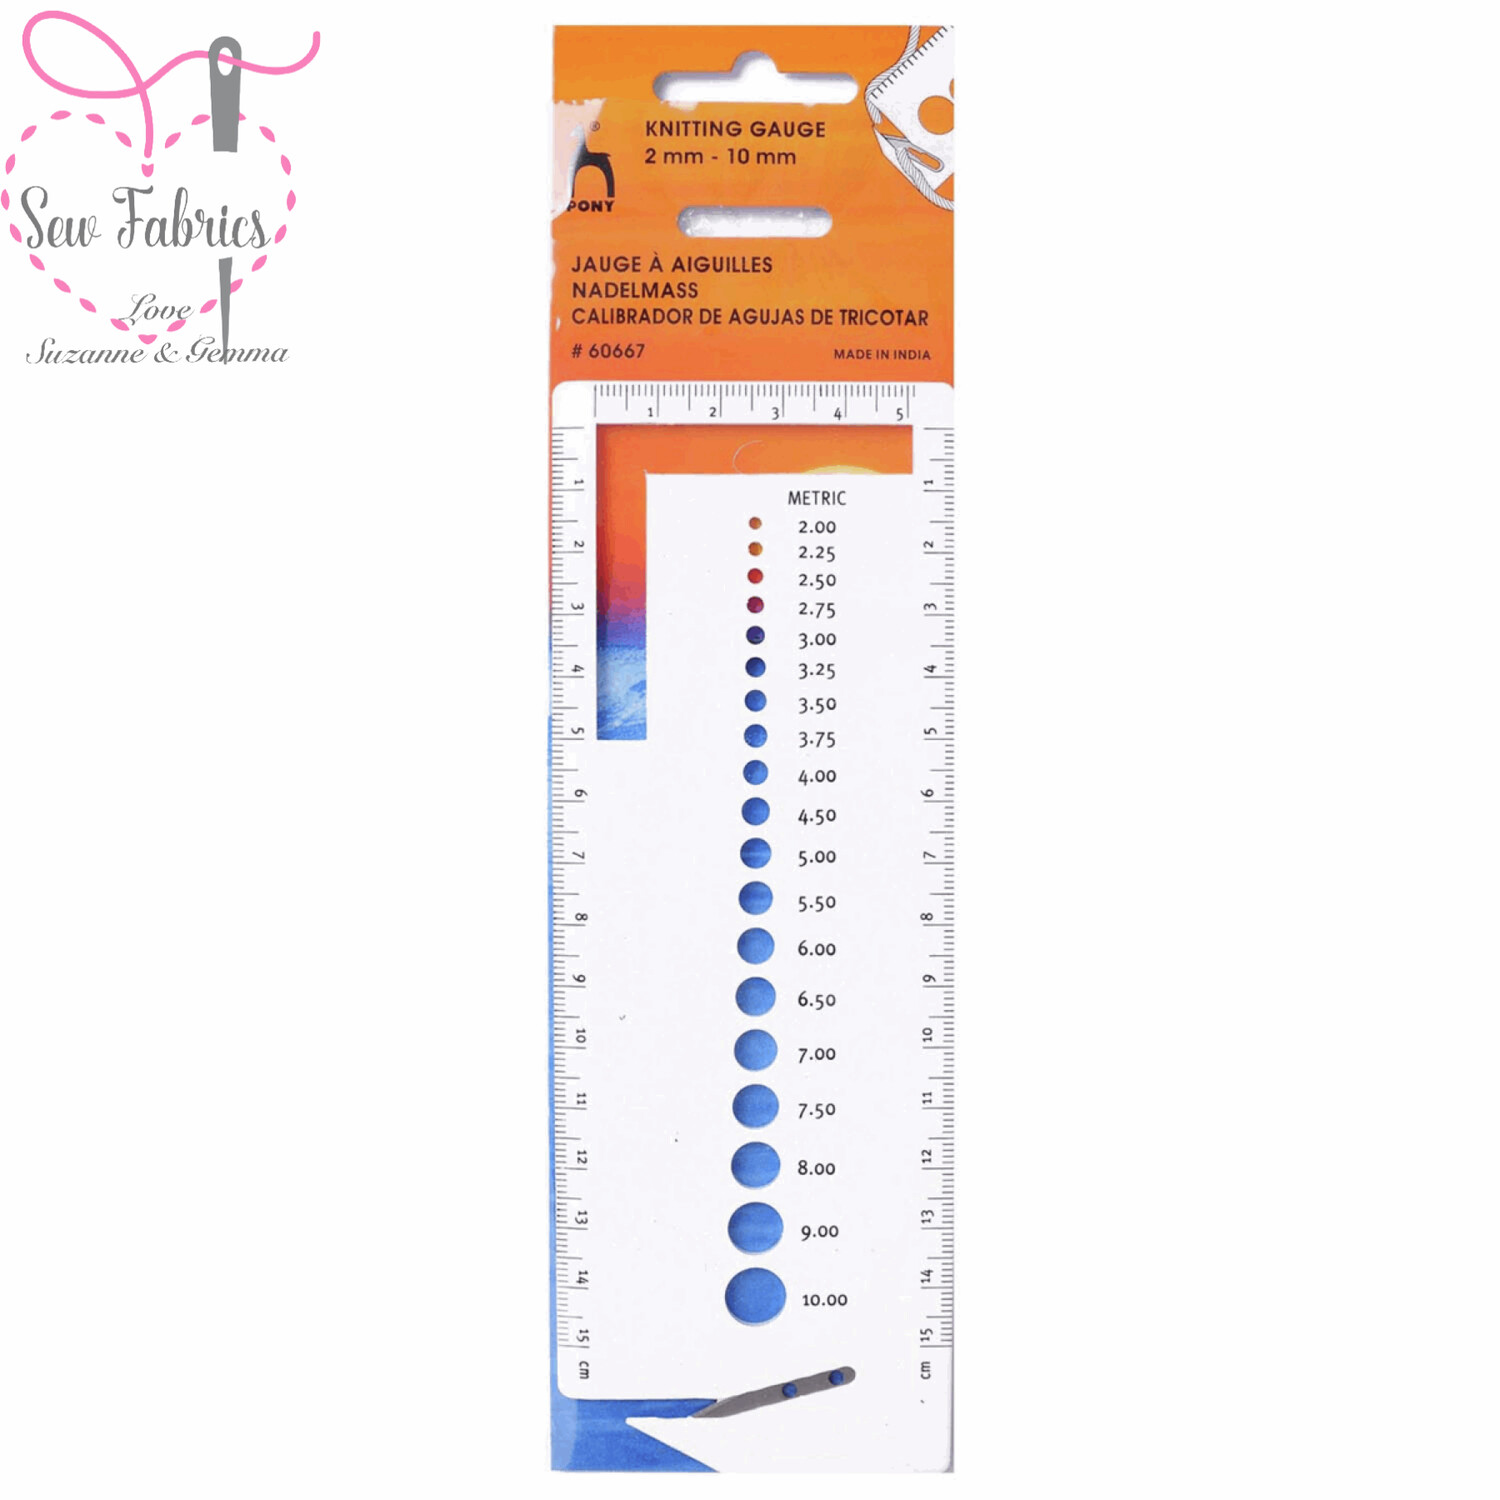 Pony Knitting Gauge - Small, measure knitting pins/needles from 2mm to 10mm, ruler measures in cm and inches.